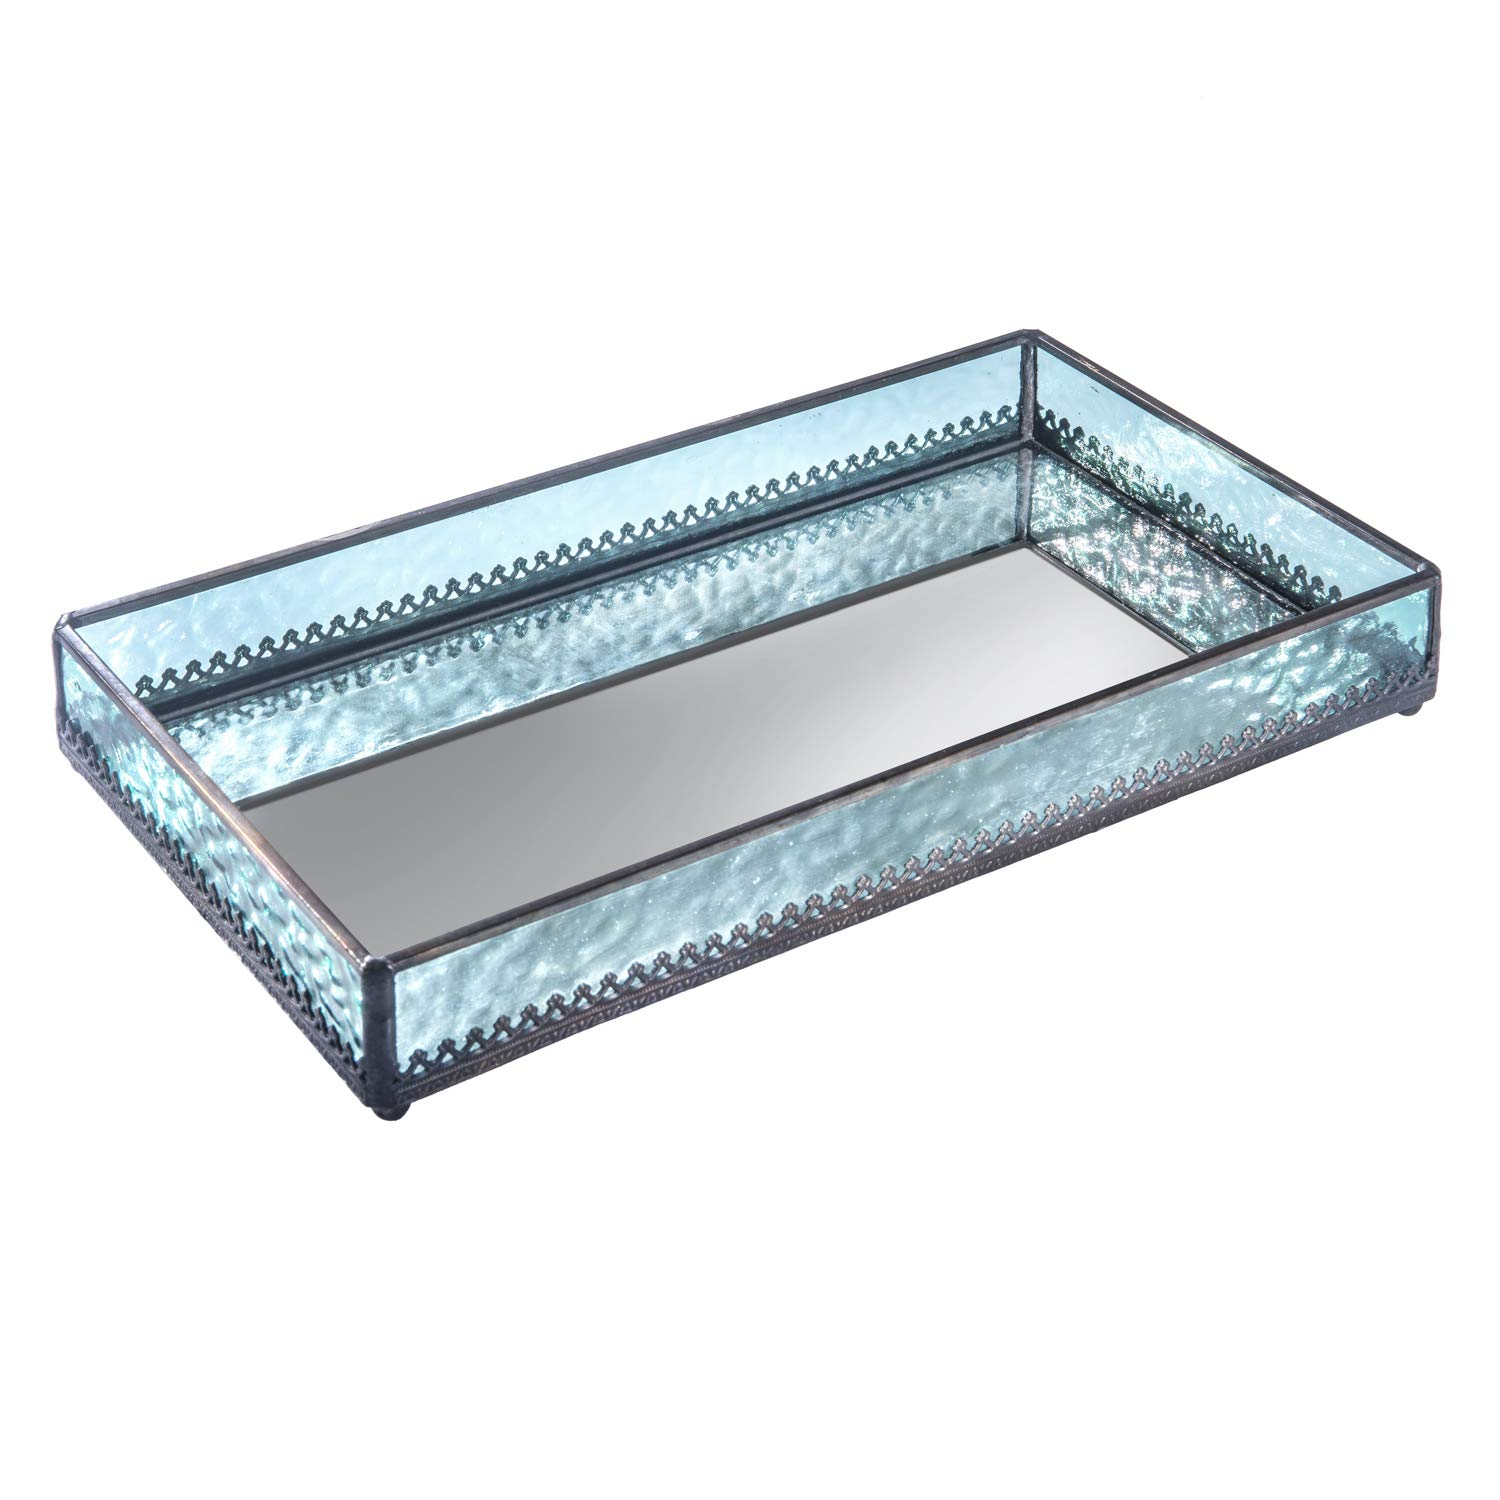 Turquoise Blue Glass Tray Mirrored Bottom Decorative Bathroom Vanity Cosmetic Makeup Organizer Jewelry Display Perfume Holder Dresser Home Décor Candle Tray Gift for Woman J Devlin Tra 127